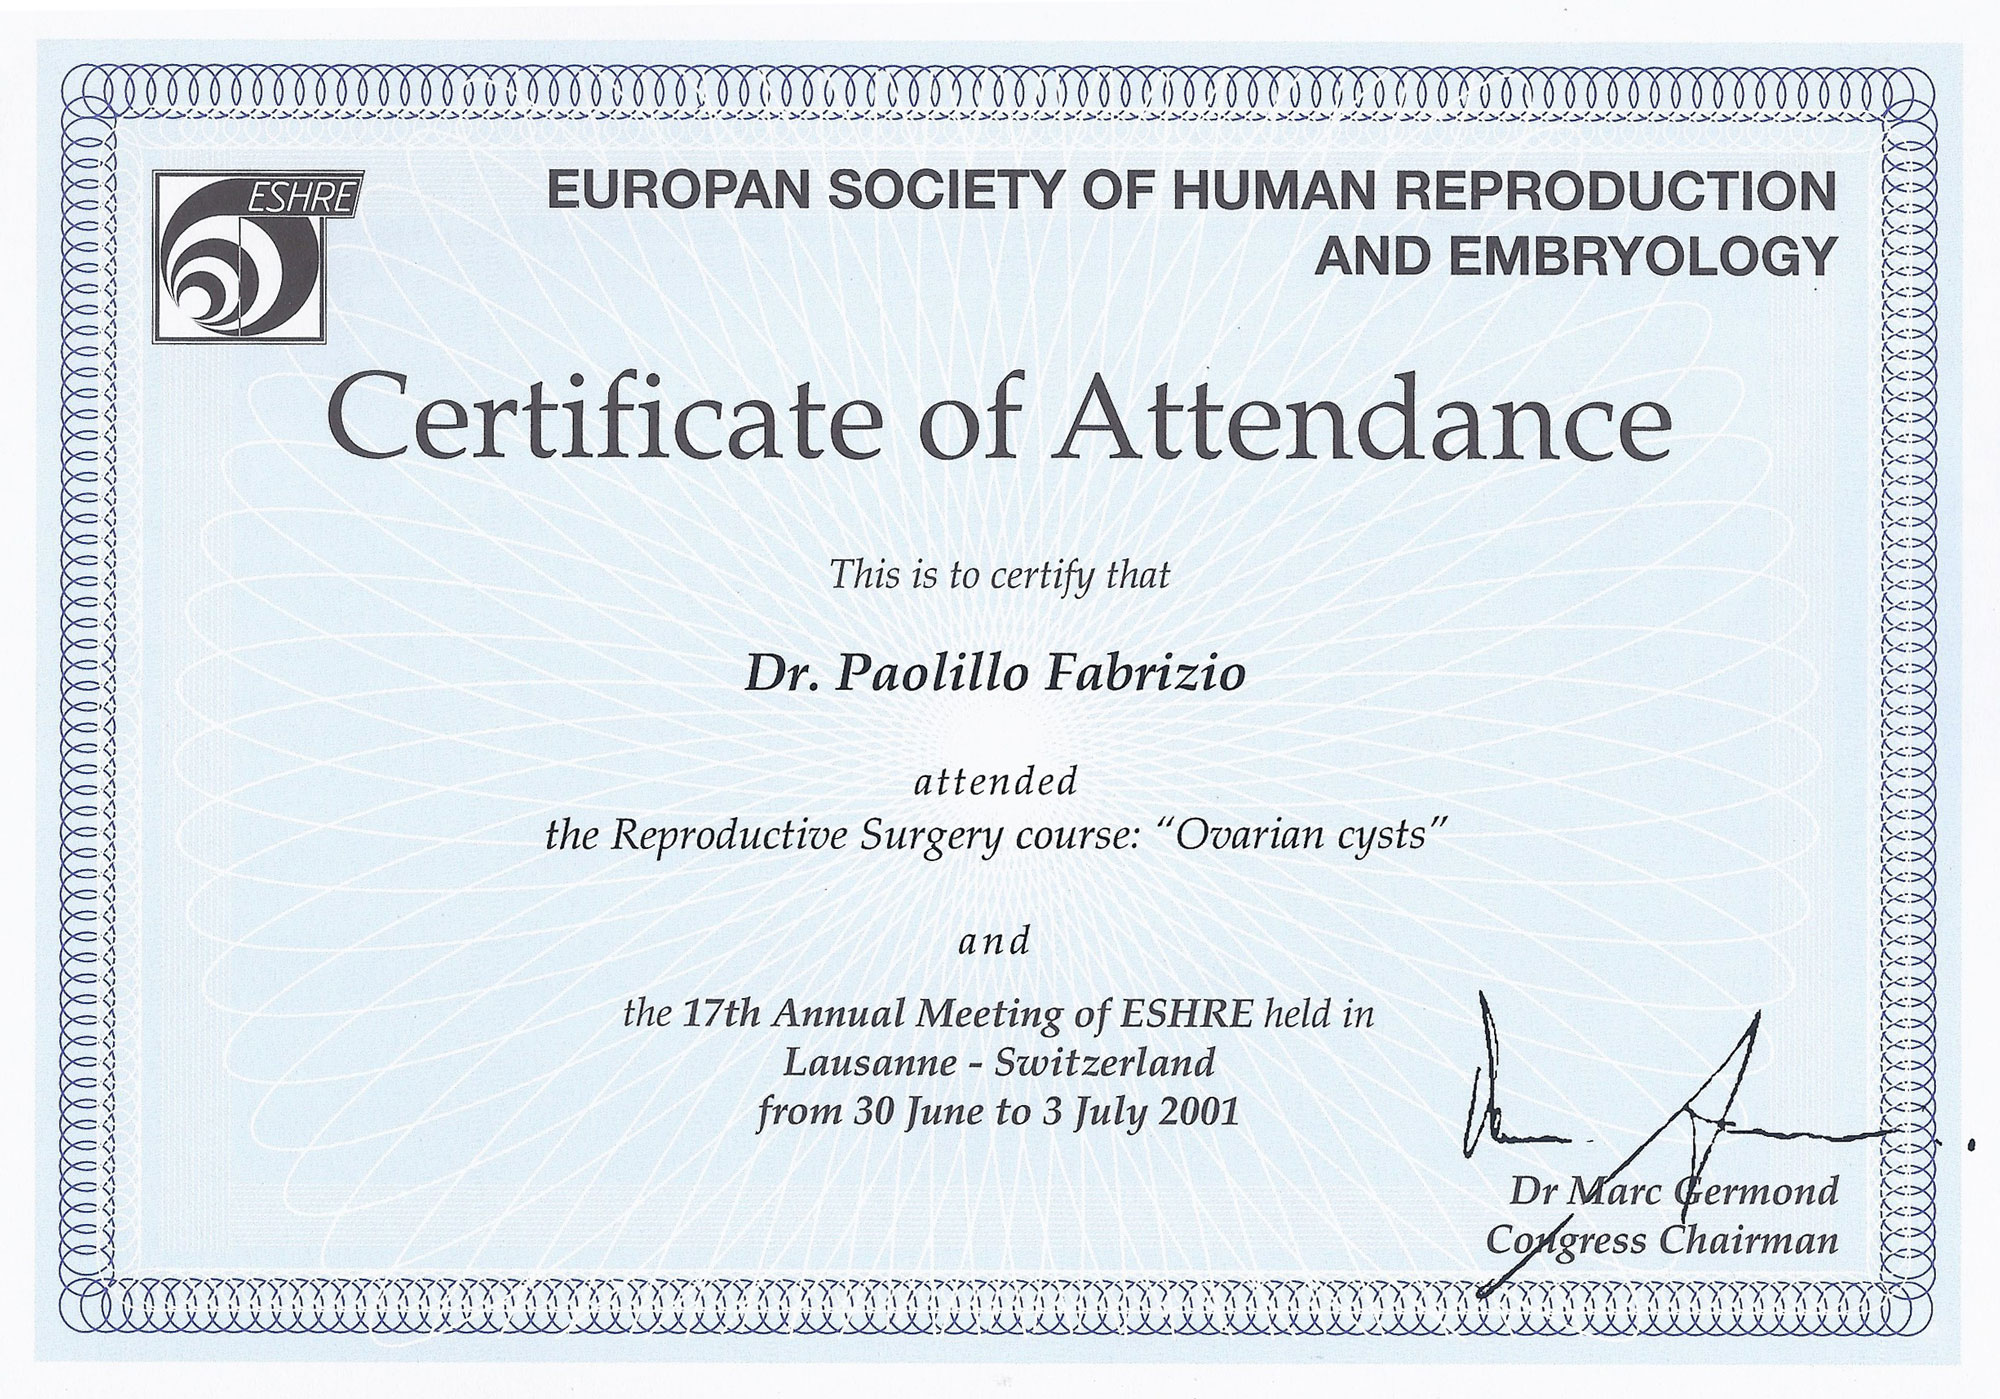 The Reproductive Surgery Course